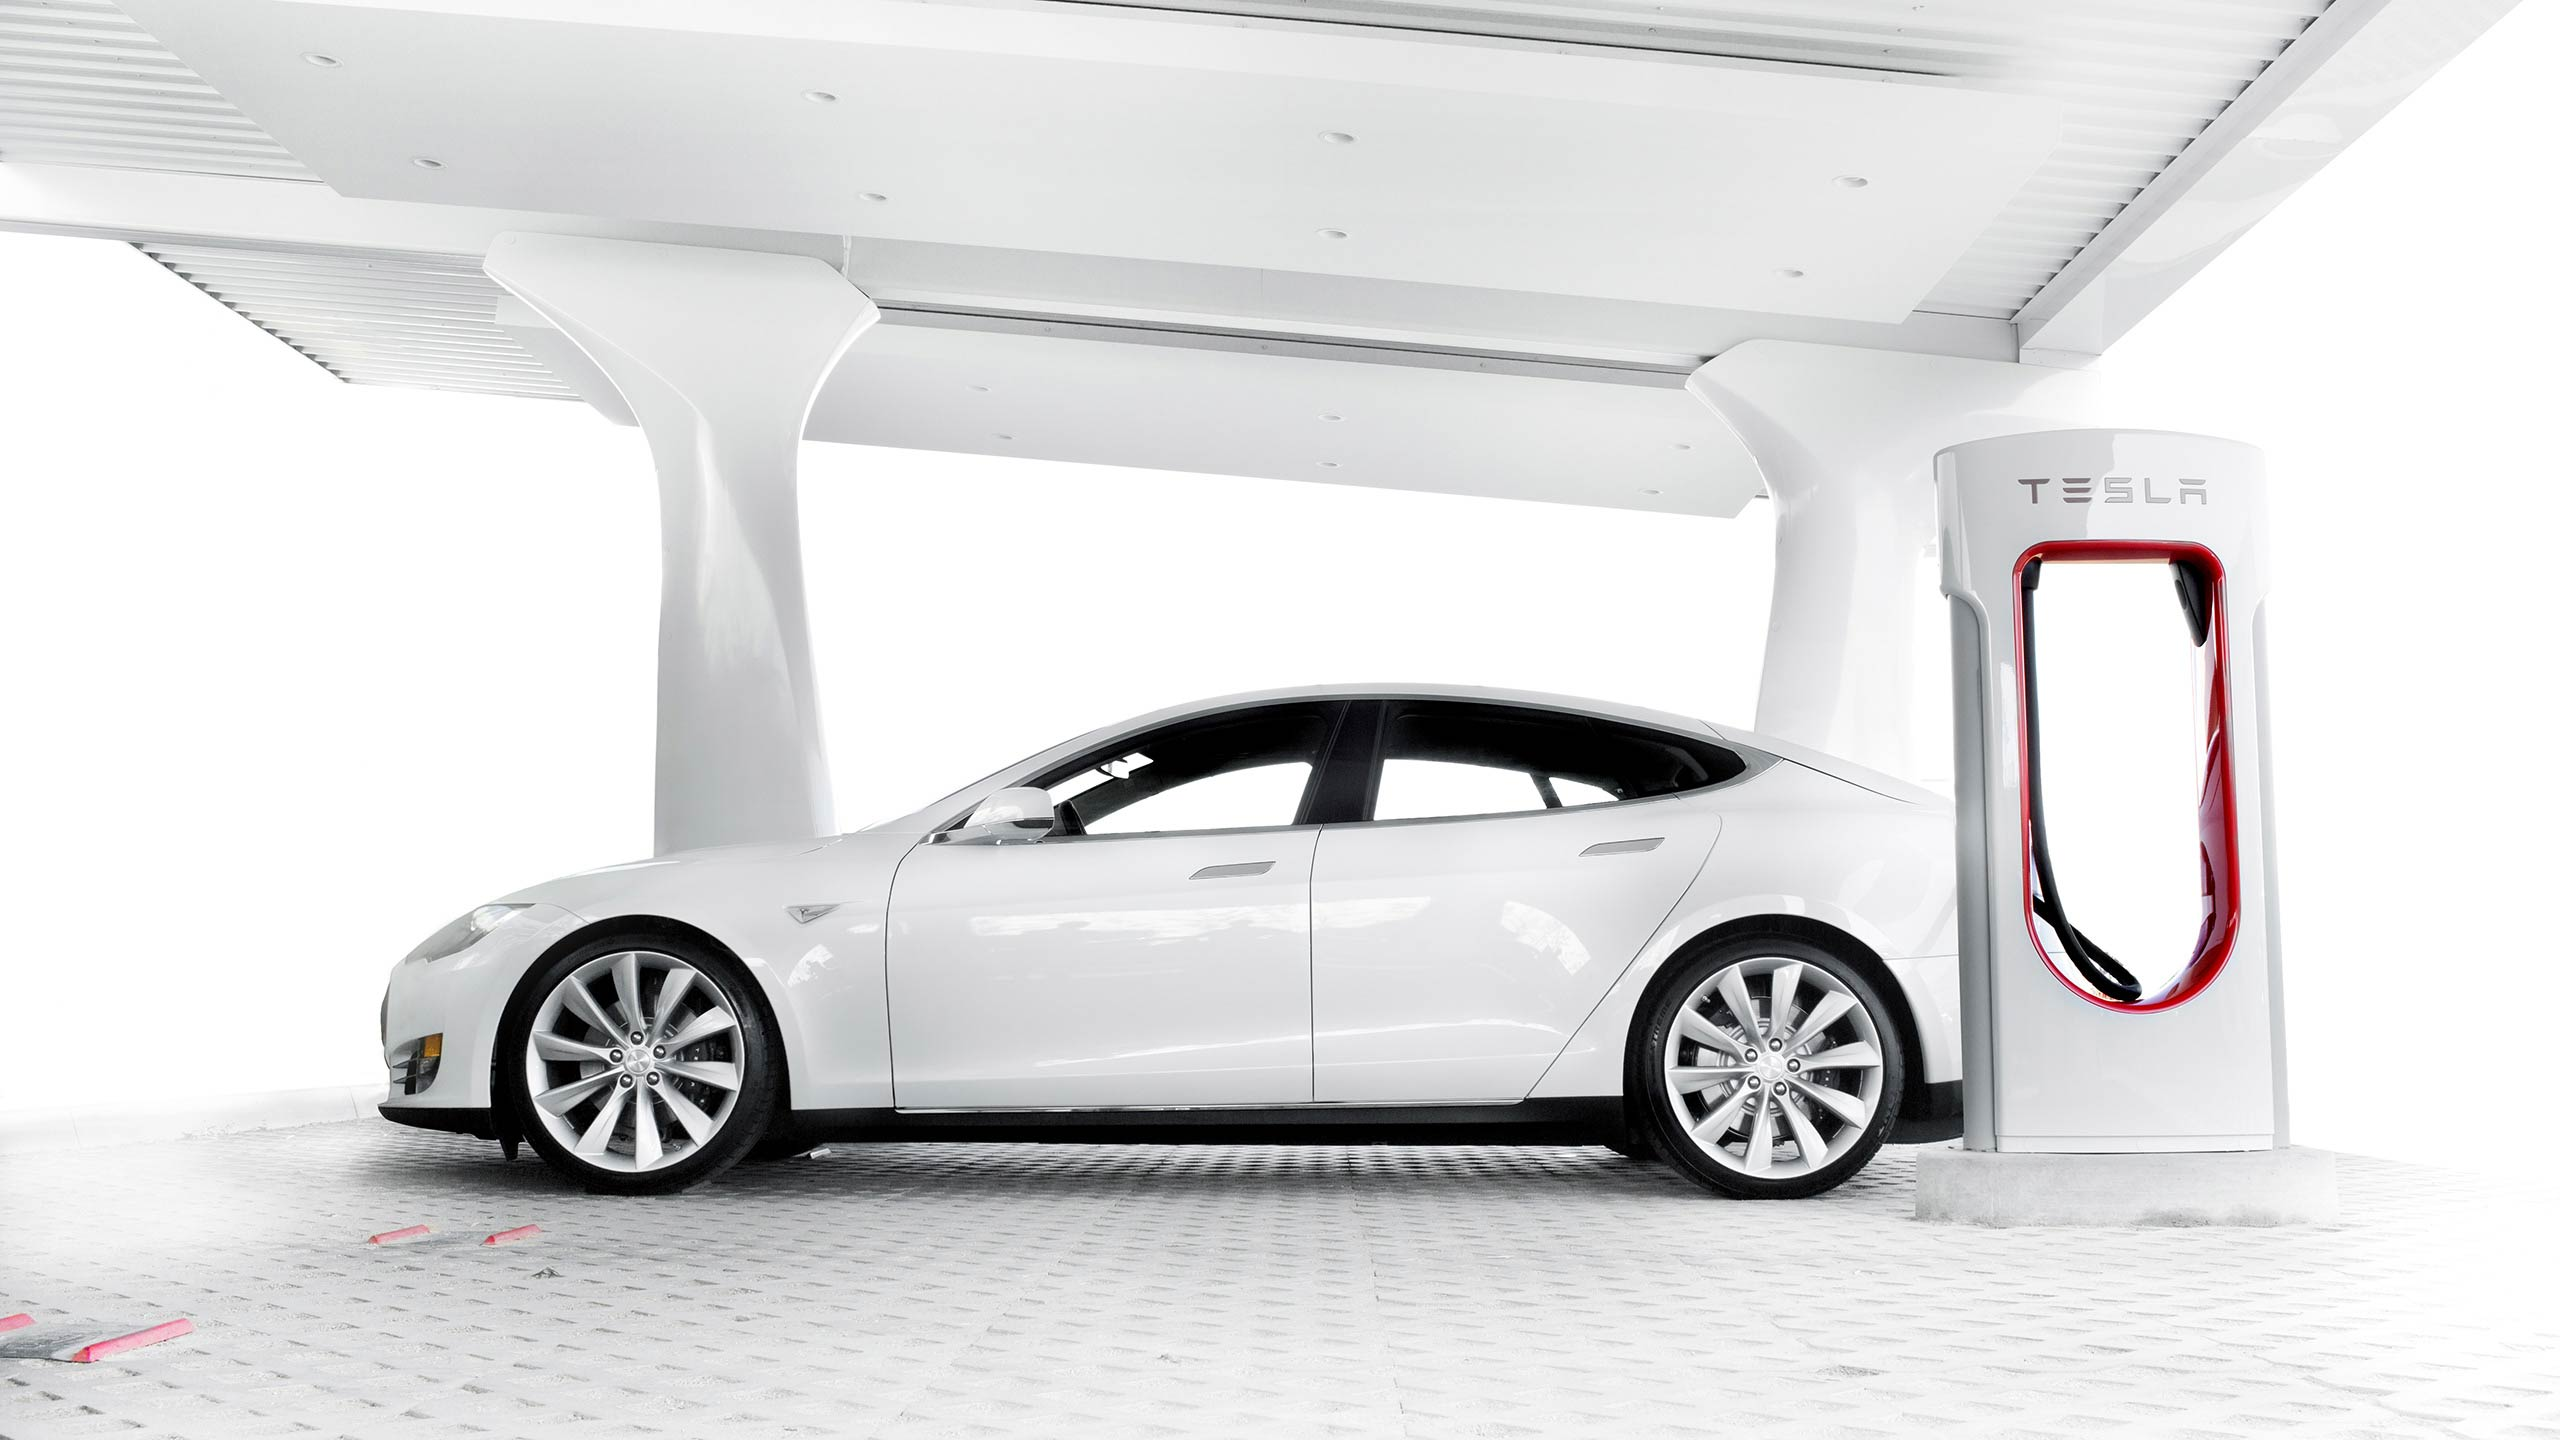 Tesla's Supercharger Network Reaches Almost 400 Charging ...